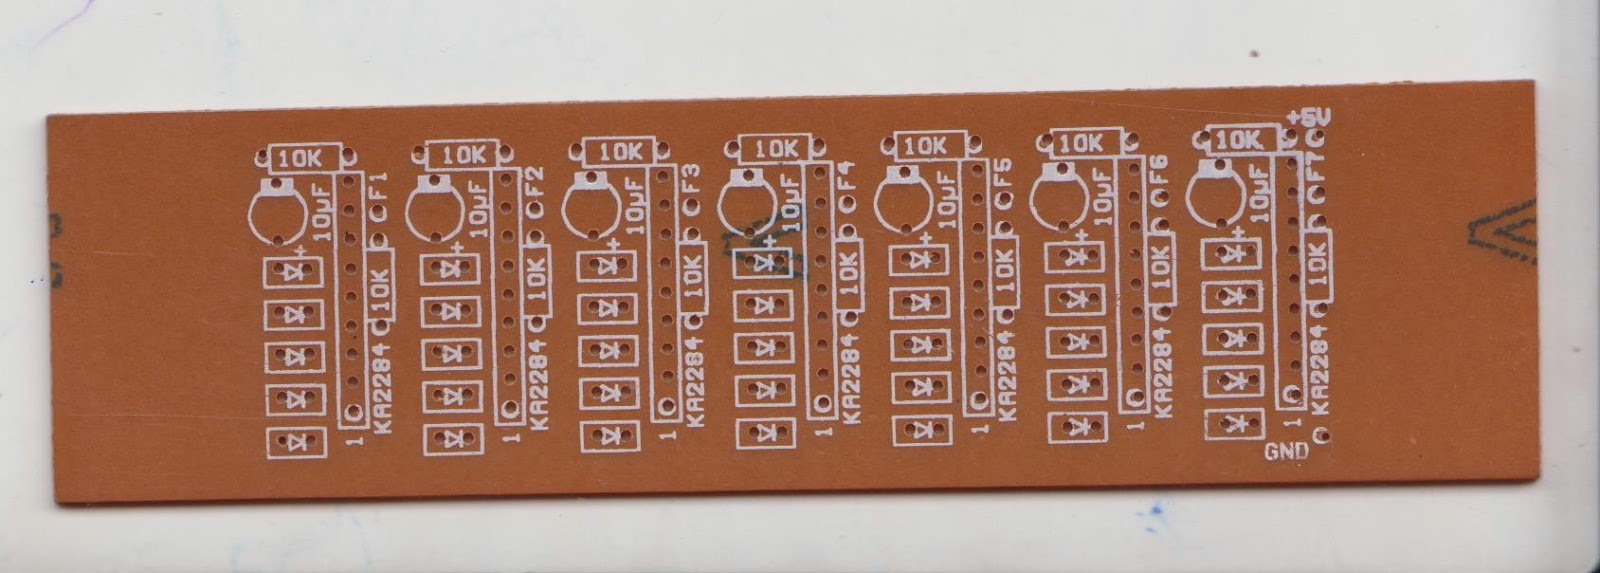 Sumith Bandara Multiple Feedback Bandpass Filter In Practical Way Notch Uses An Operational Amplifier Circuit Diagrams Free Filters Used For Above Pcb And Lm324 Quad Op Amp Is Recommended 7 Gates Channels To Separate The Audio Signal